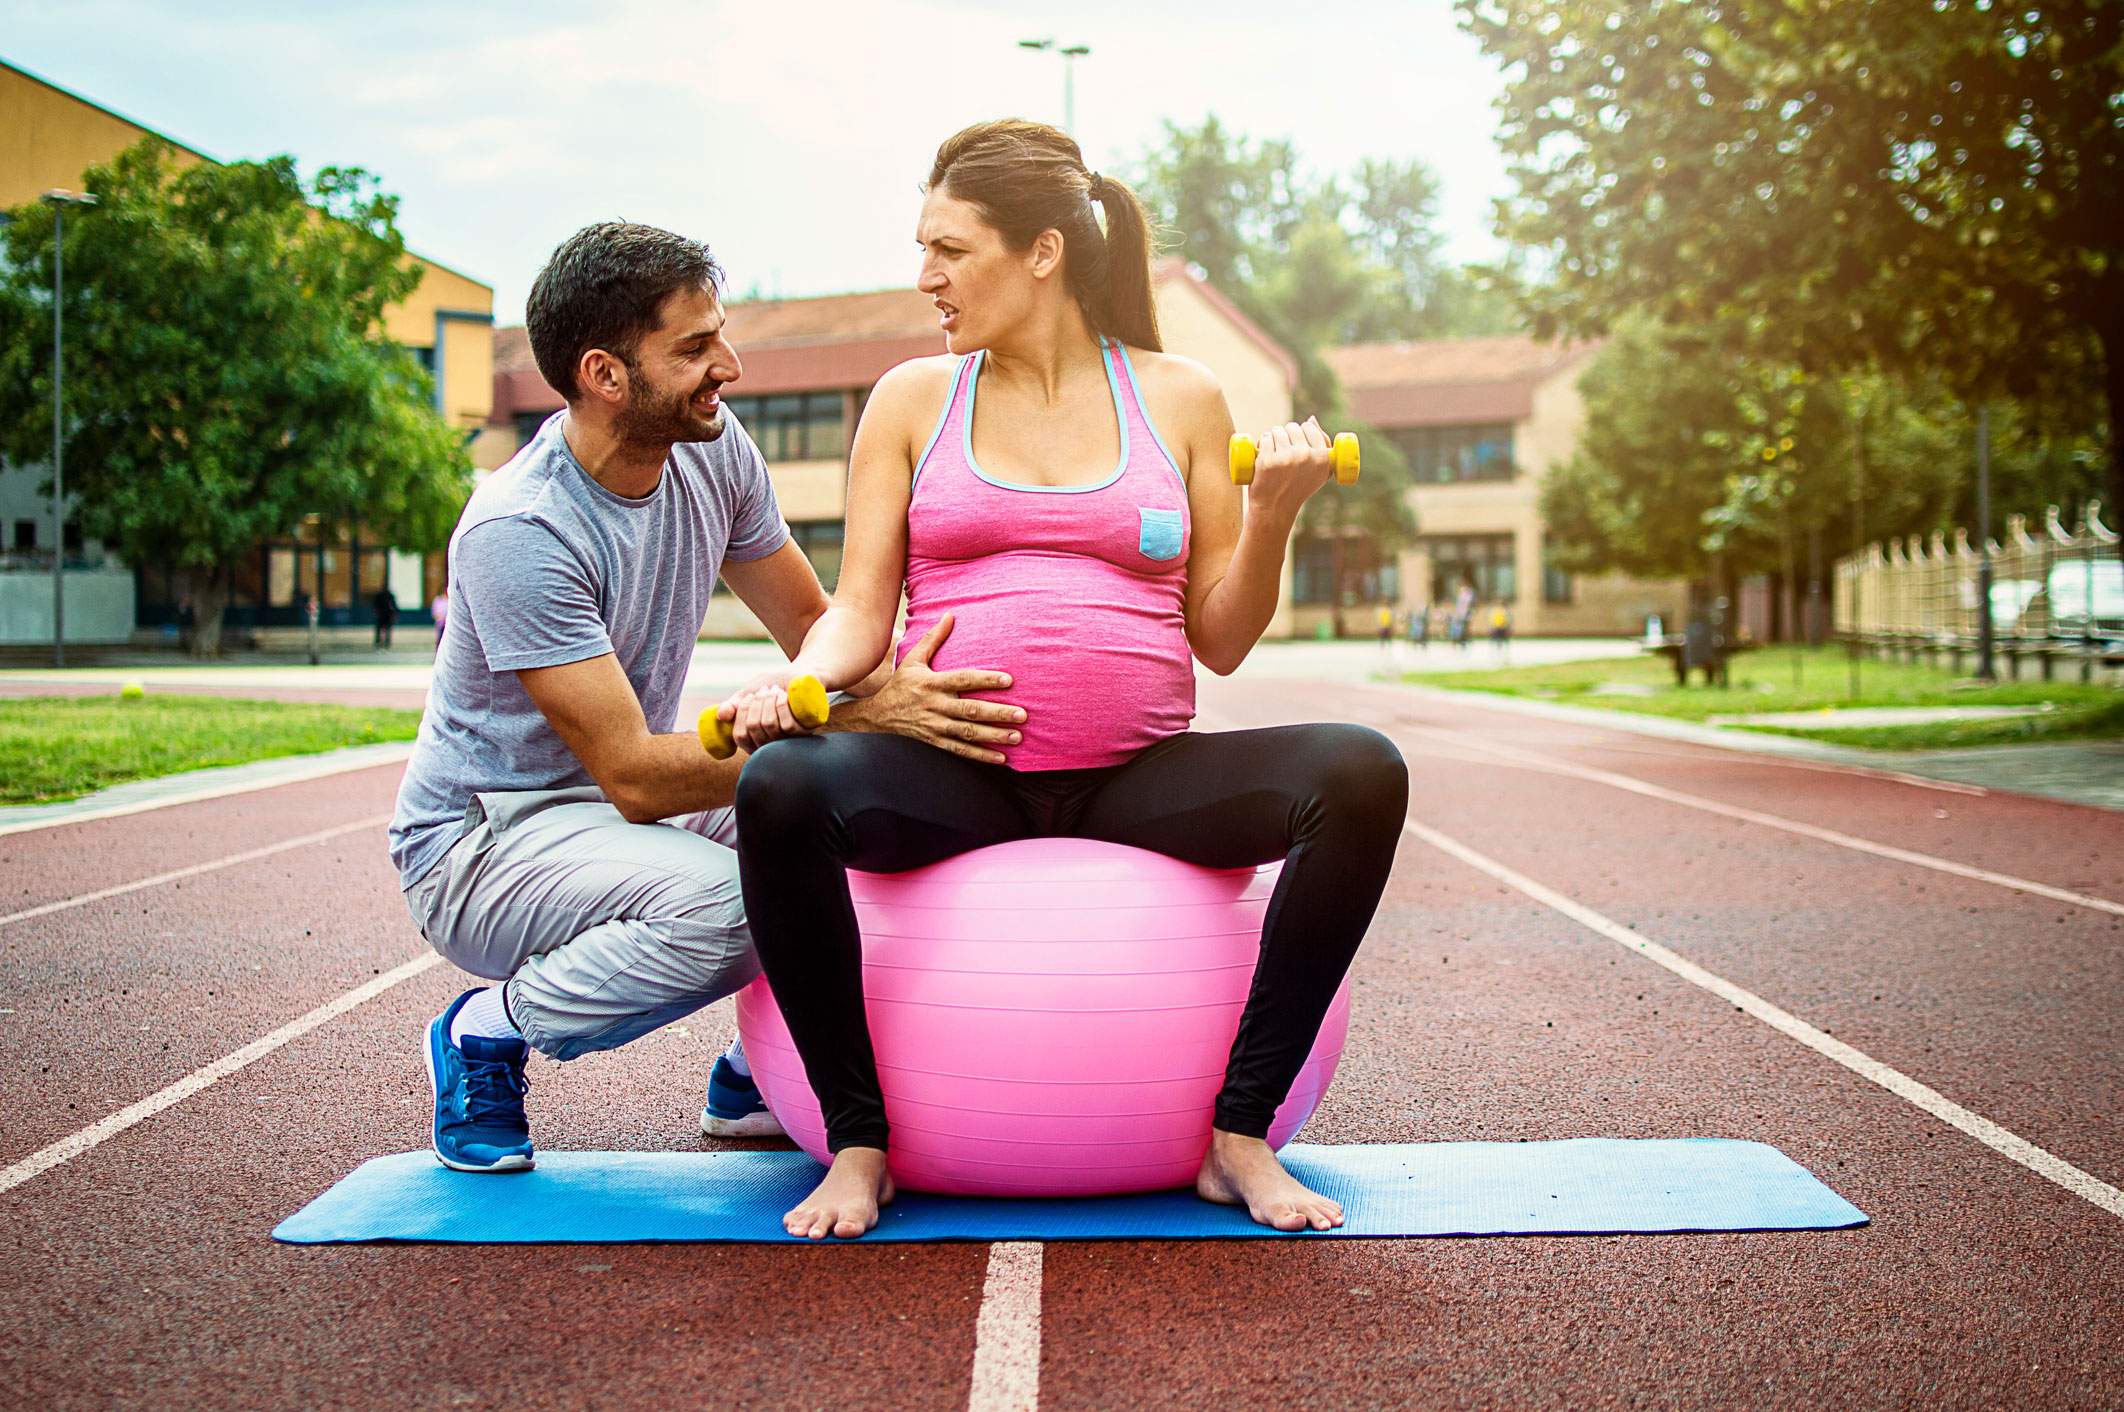 Simple Exercises You Can Do With Your Pregnant Partner Familyeducation